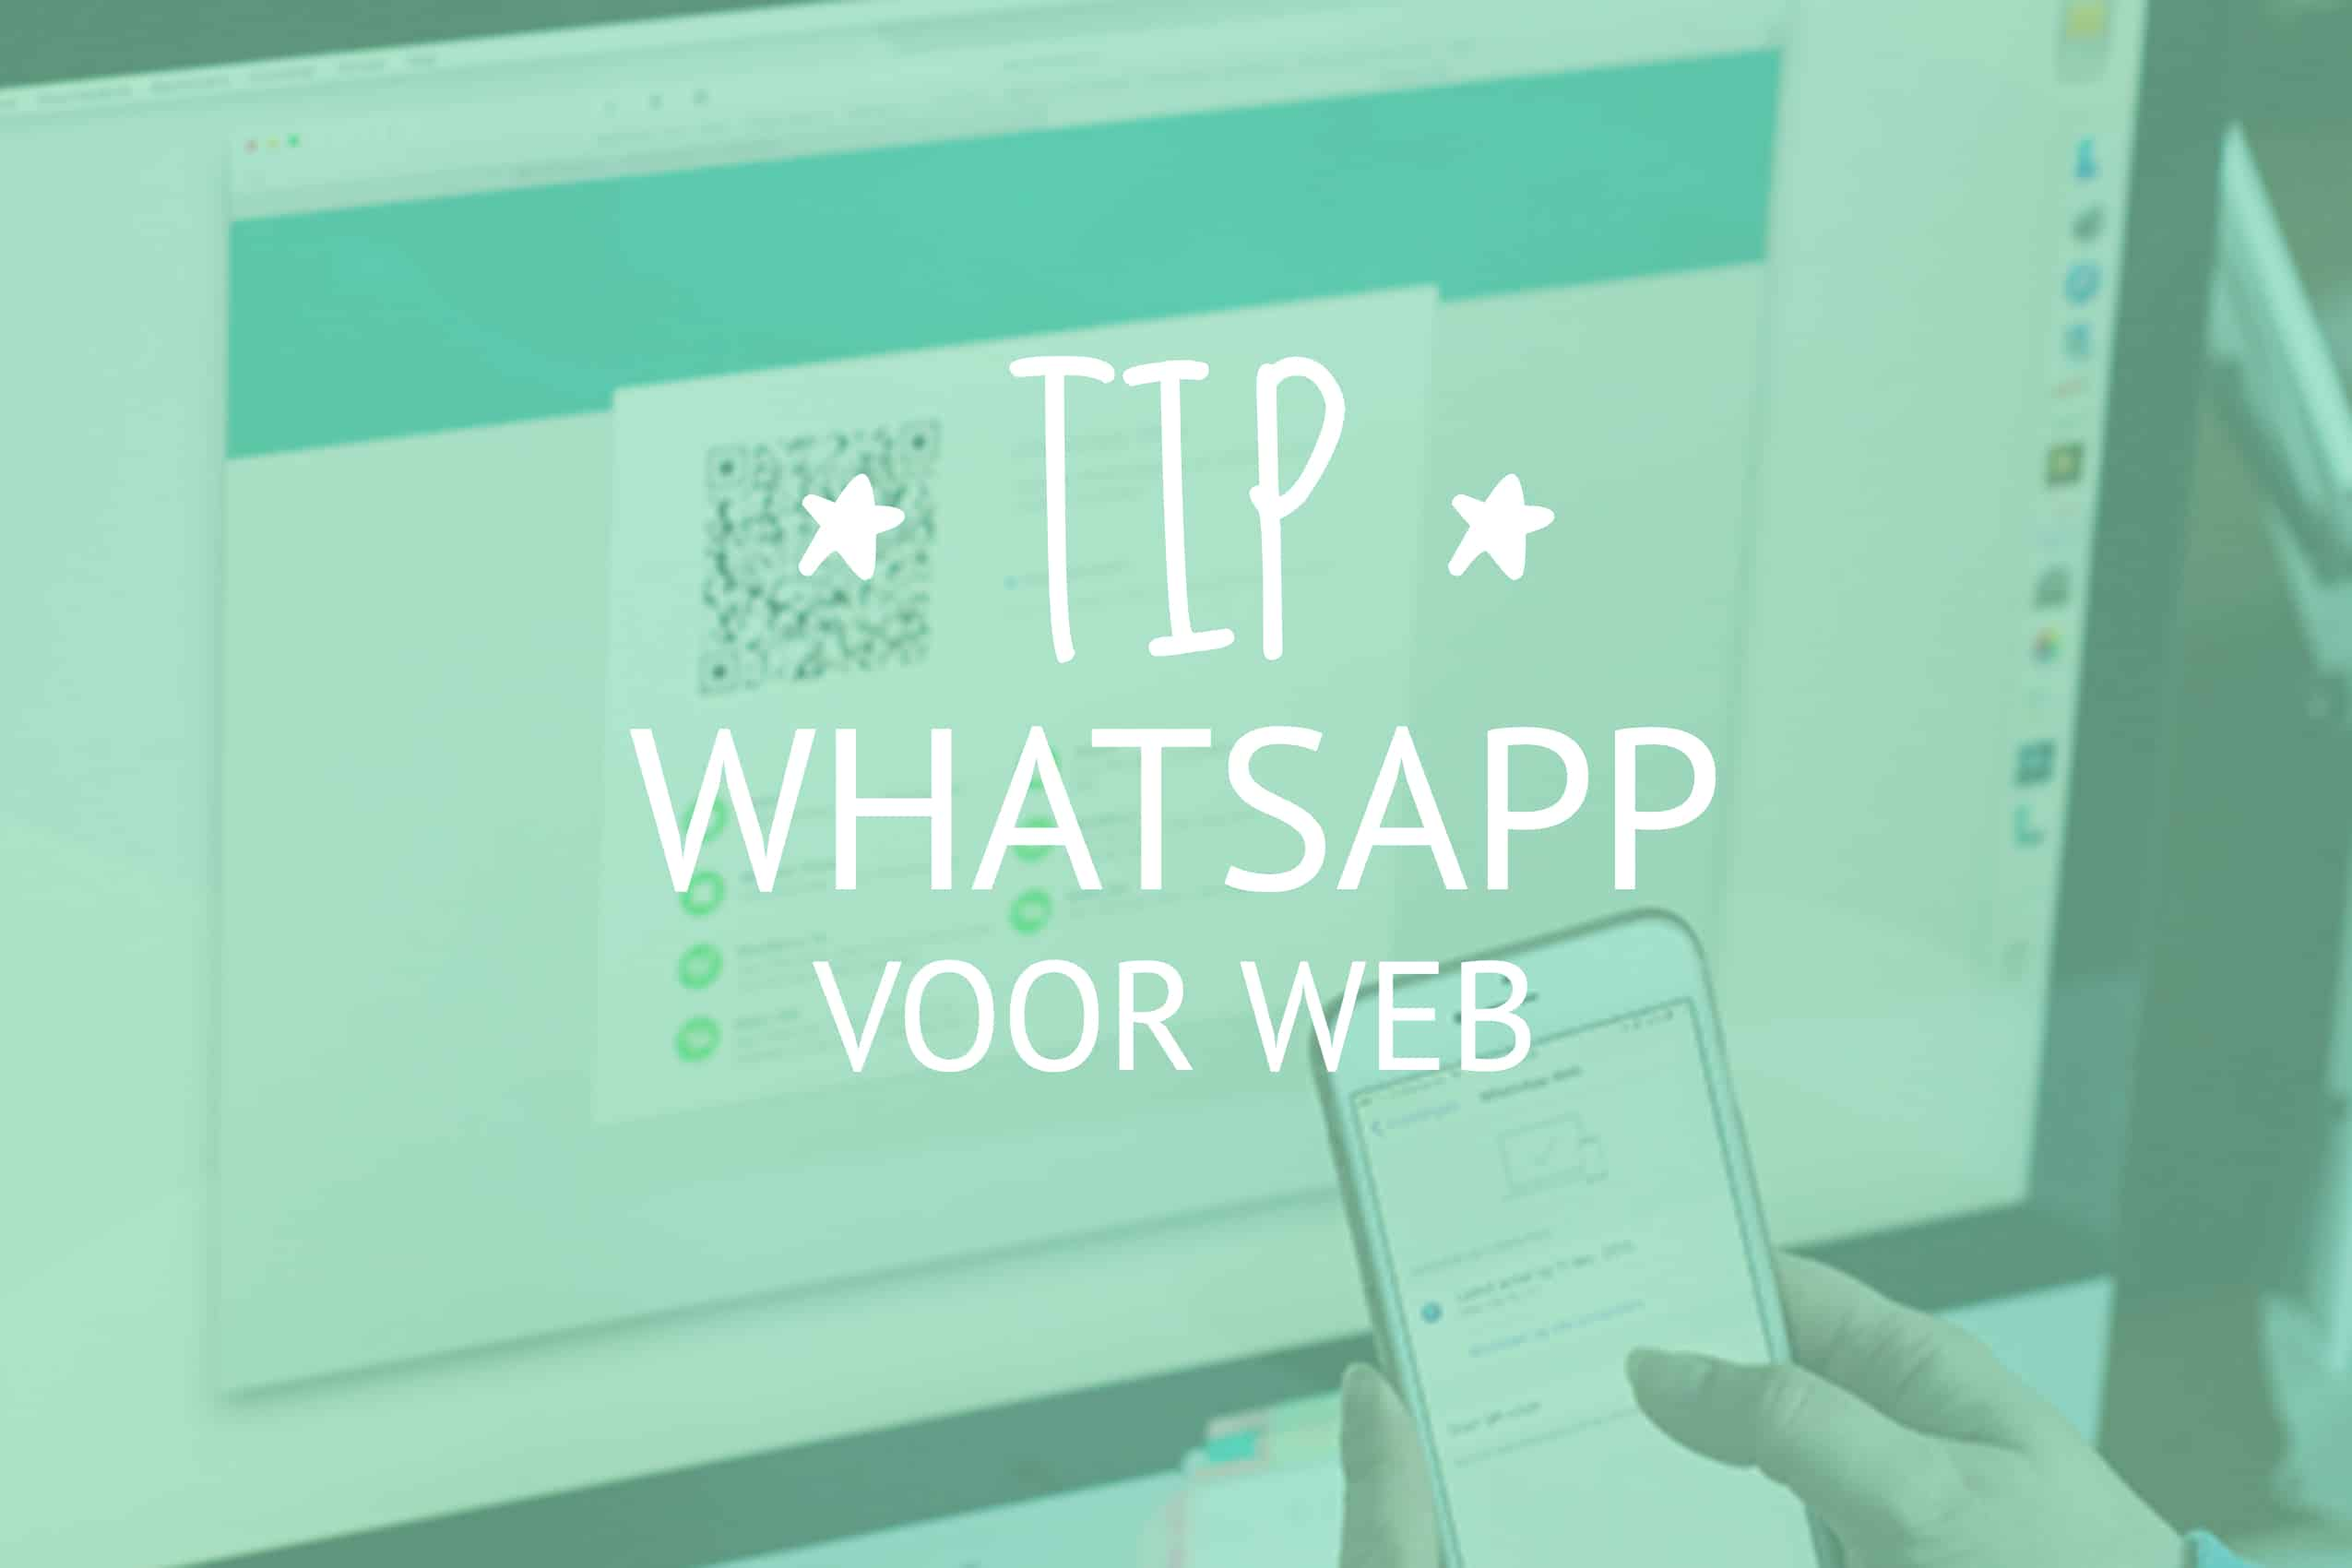 Whatsapp voor web VA for Adventure